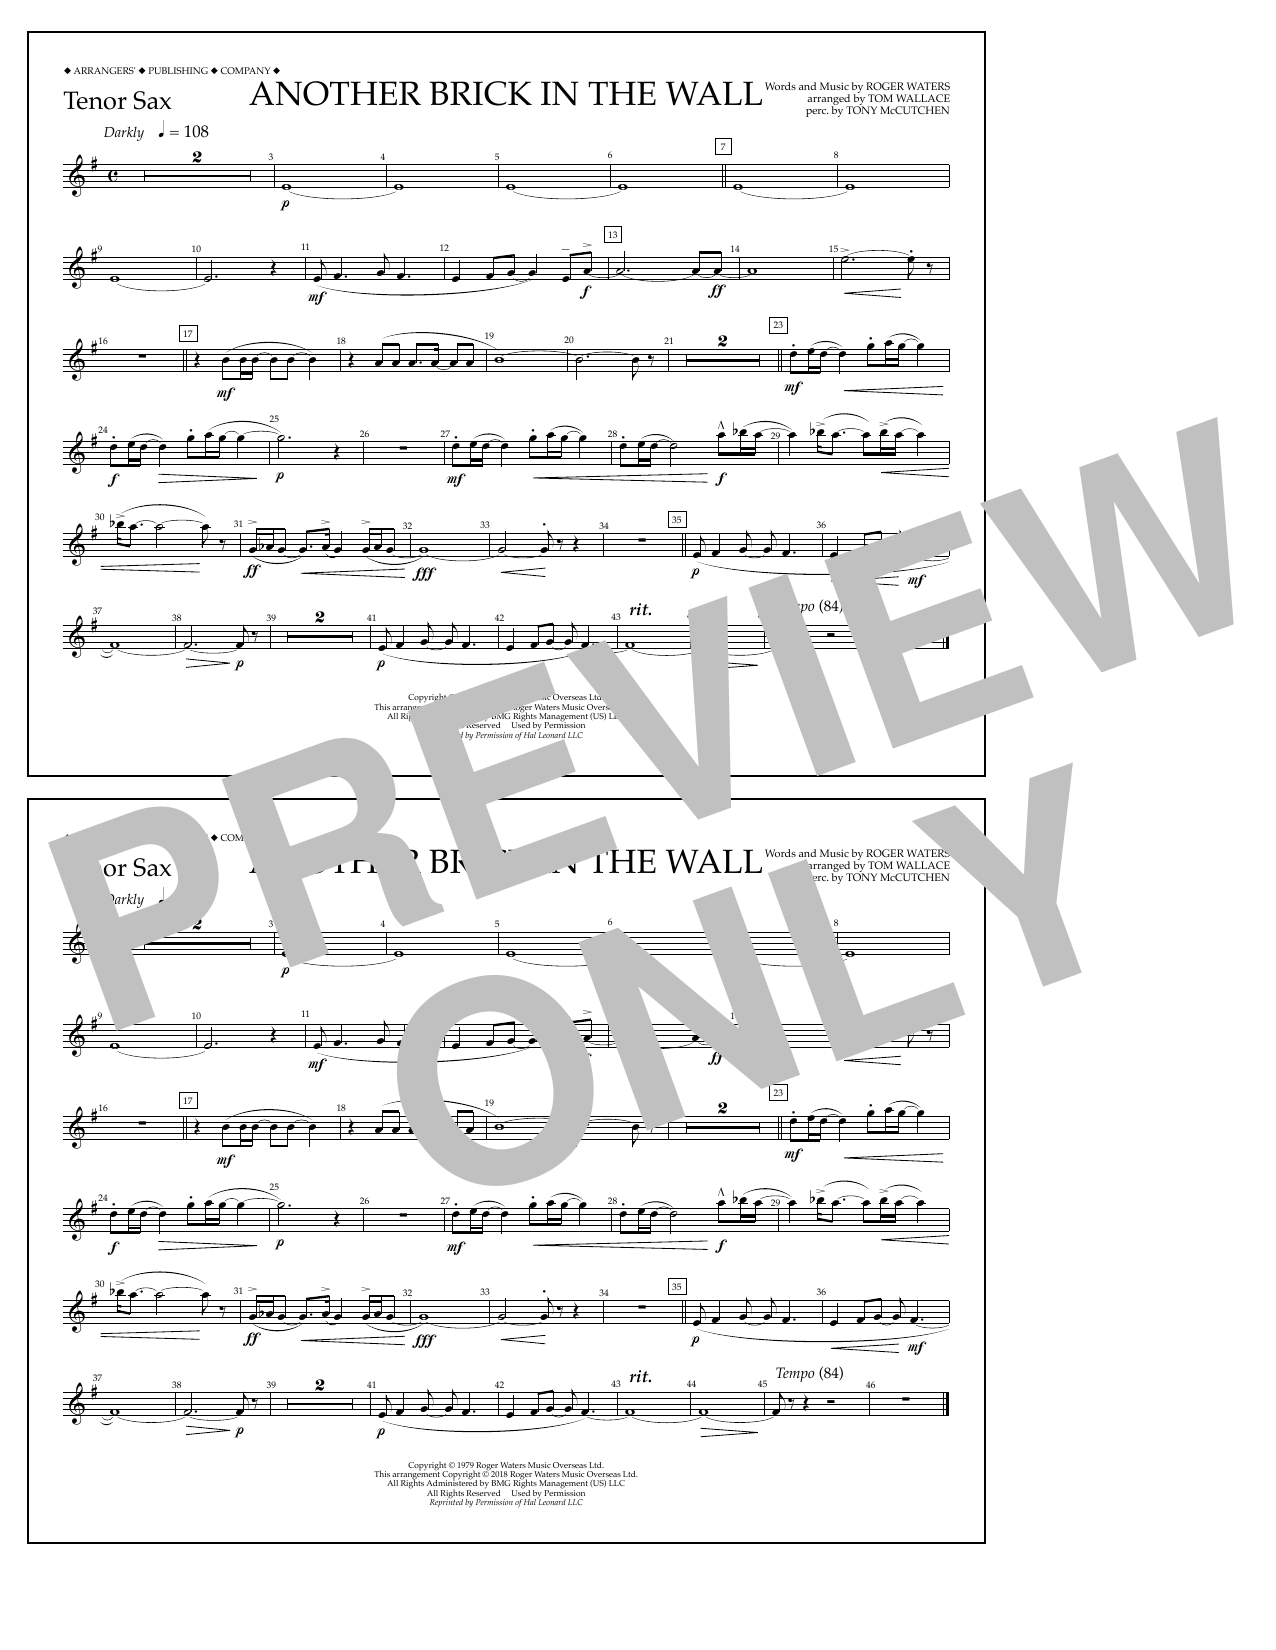 Another Brick in the Wall - Tenor Sax Partition Digitale